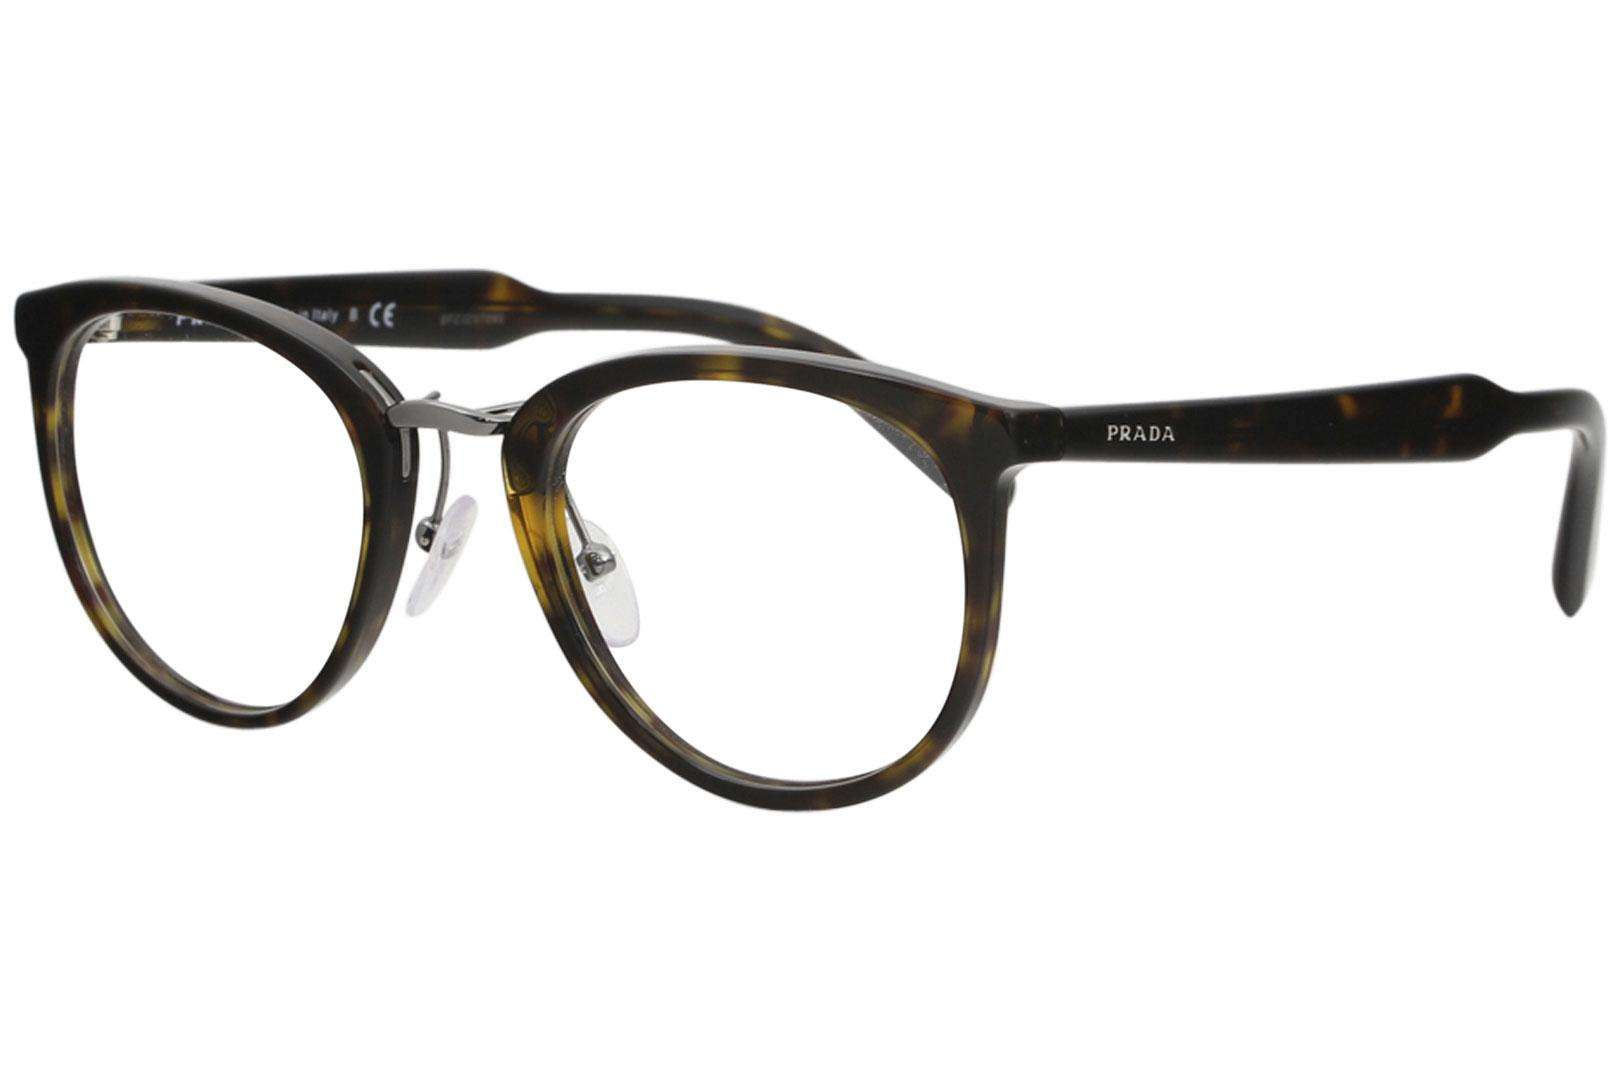 09b6322e7c6 Prada Men s Eyeglasses VPR03T VPR 03T Full Rim Optical Frame